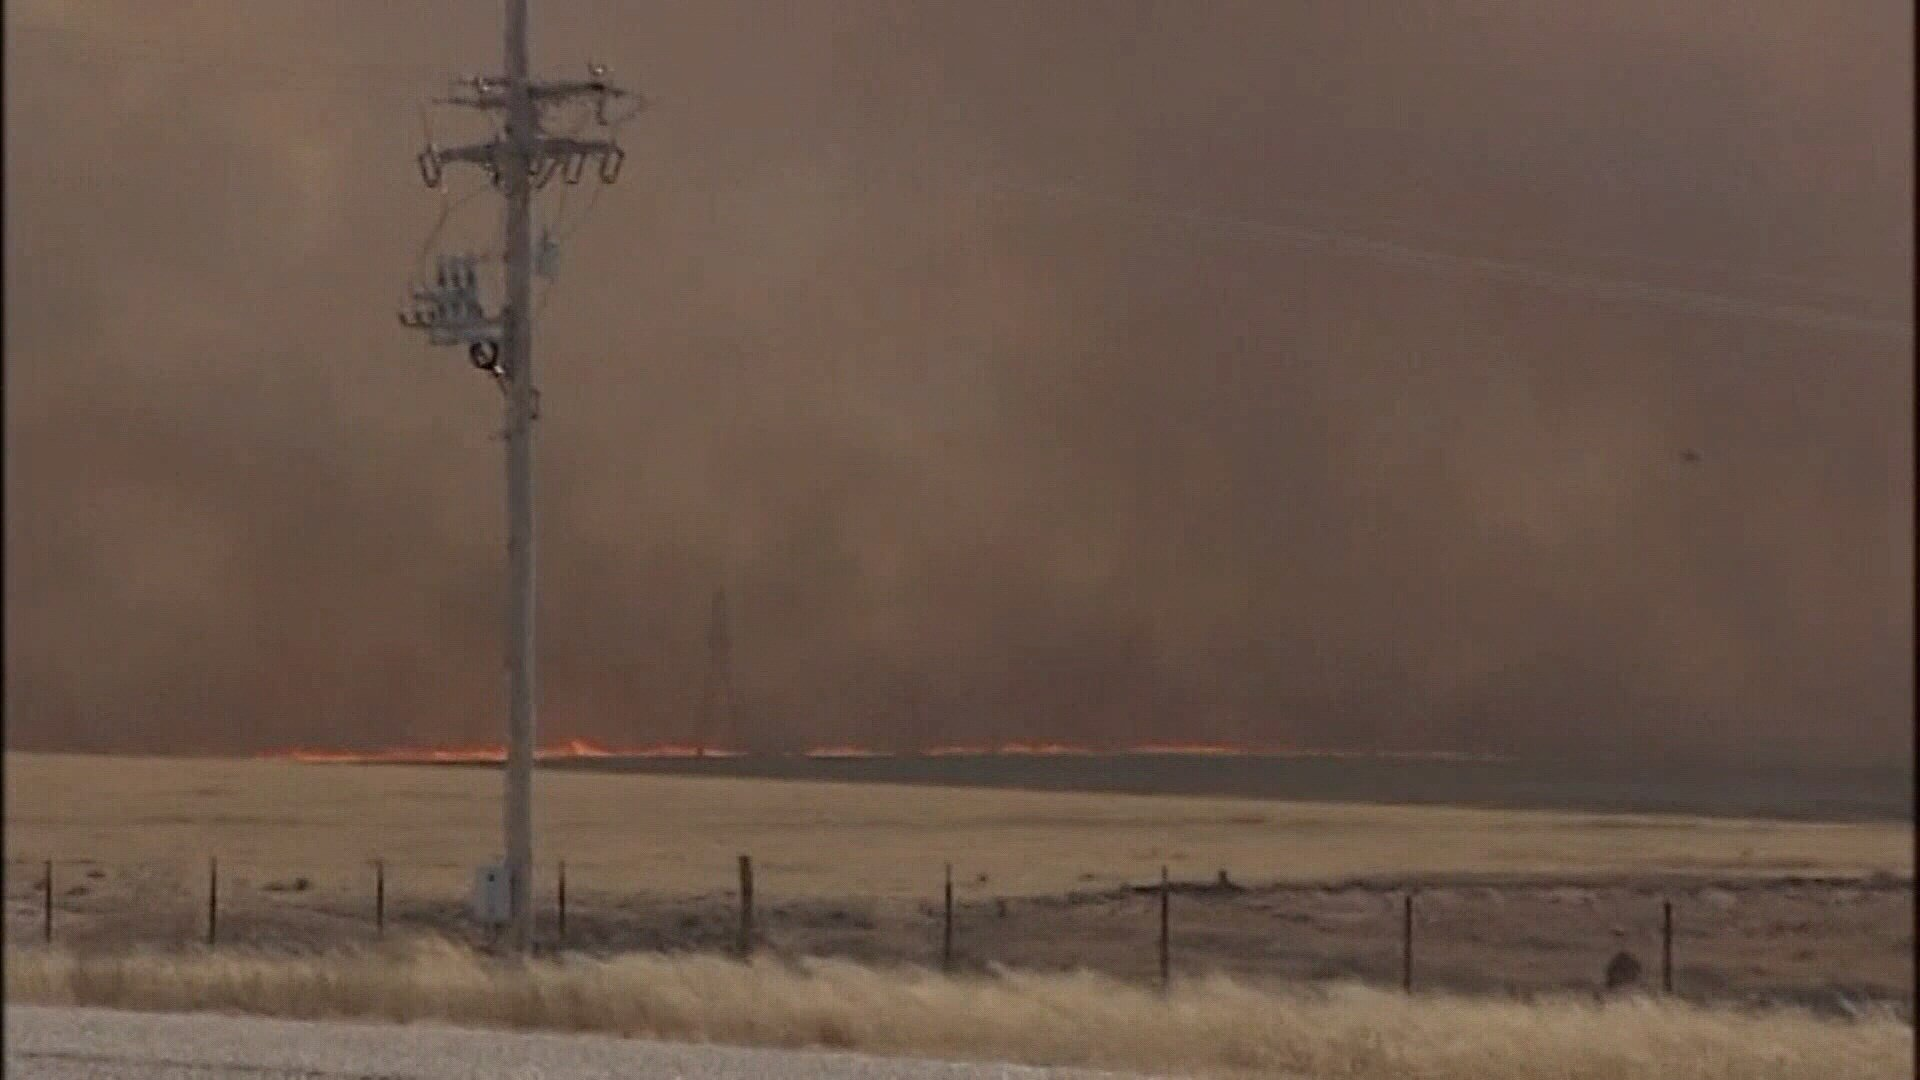 Several wildfires threatened the Texas Panhandle